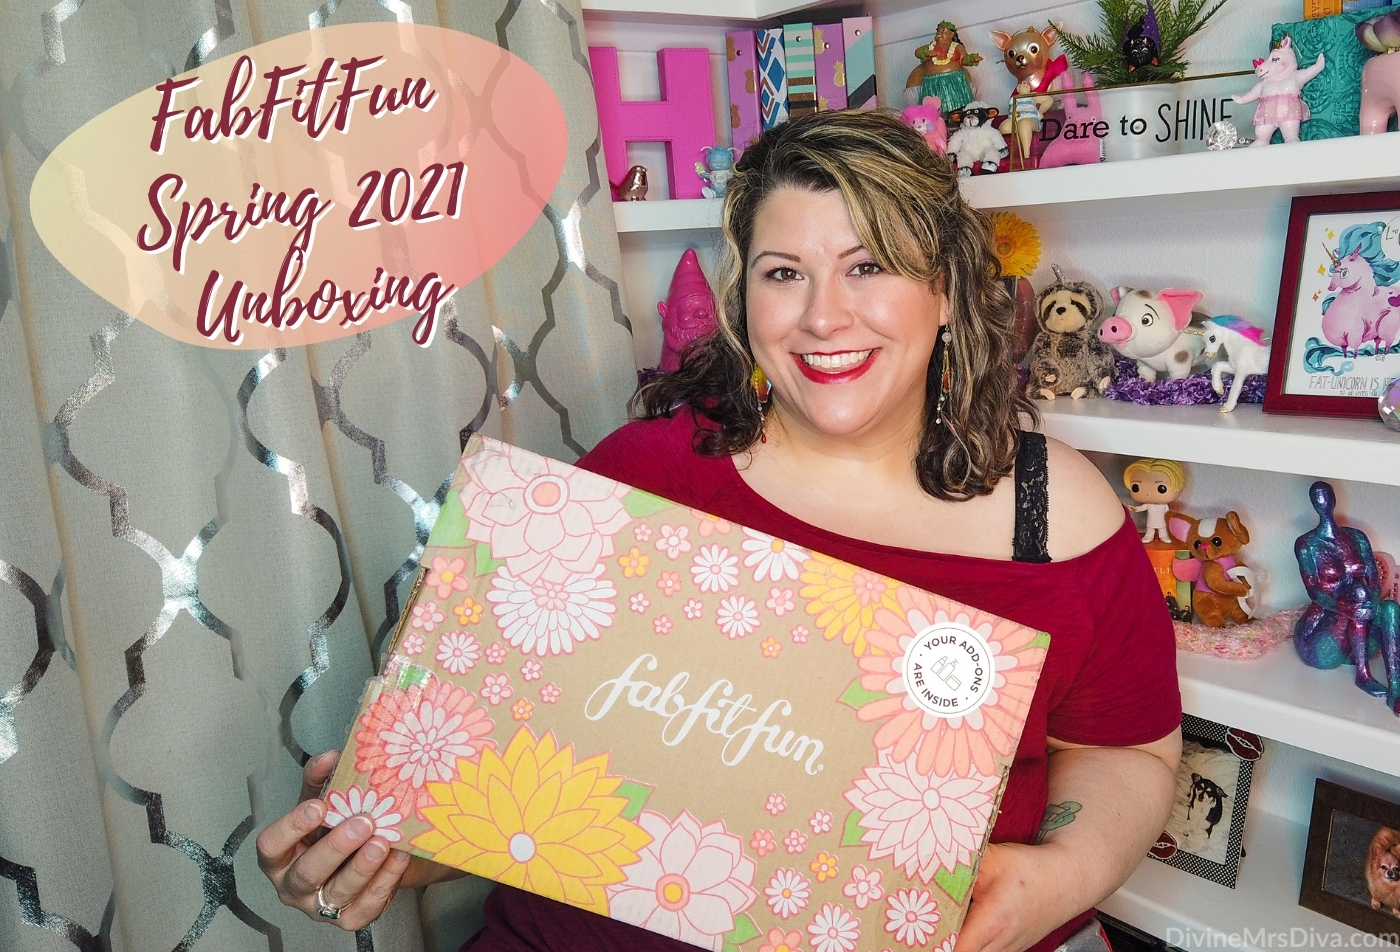 In today's post, Hailey unboxes her spring FabFitFun box! - DivineMrsDiva.com #FabFitFun #unboxing #subscriptionbox #beauty #makeup #haircare #skincare #beautybag #beautybox